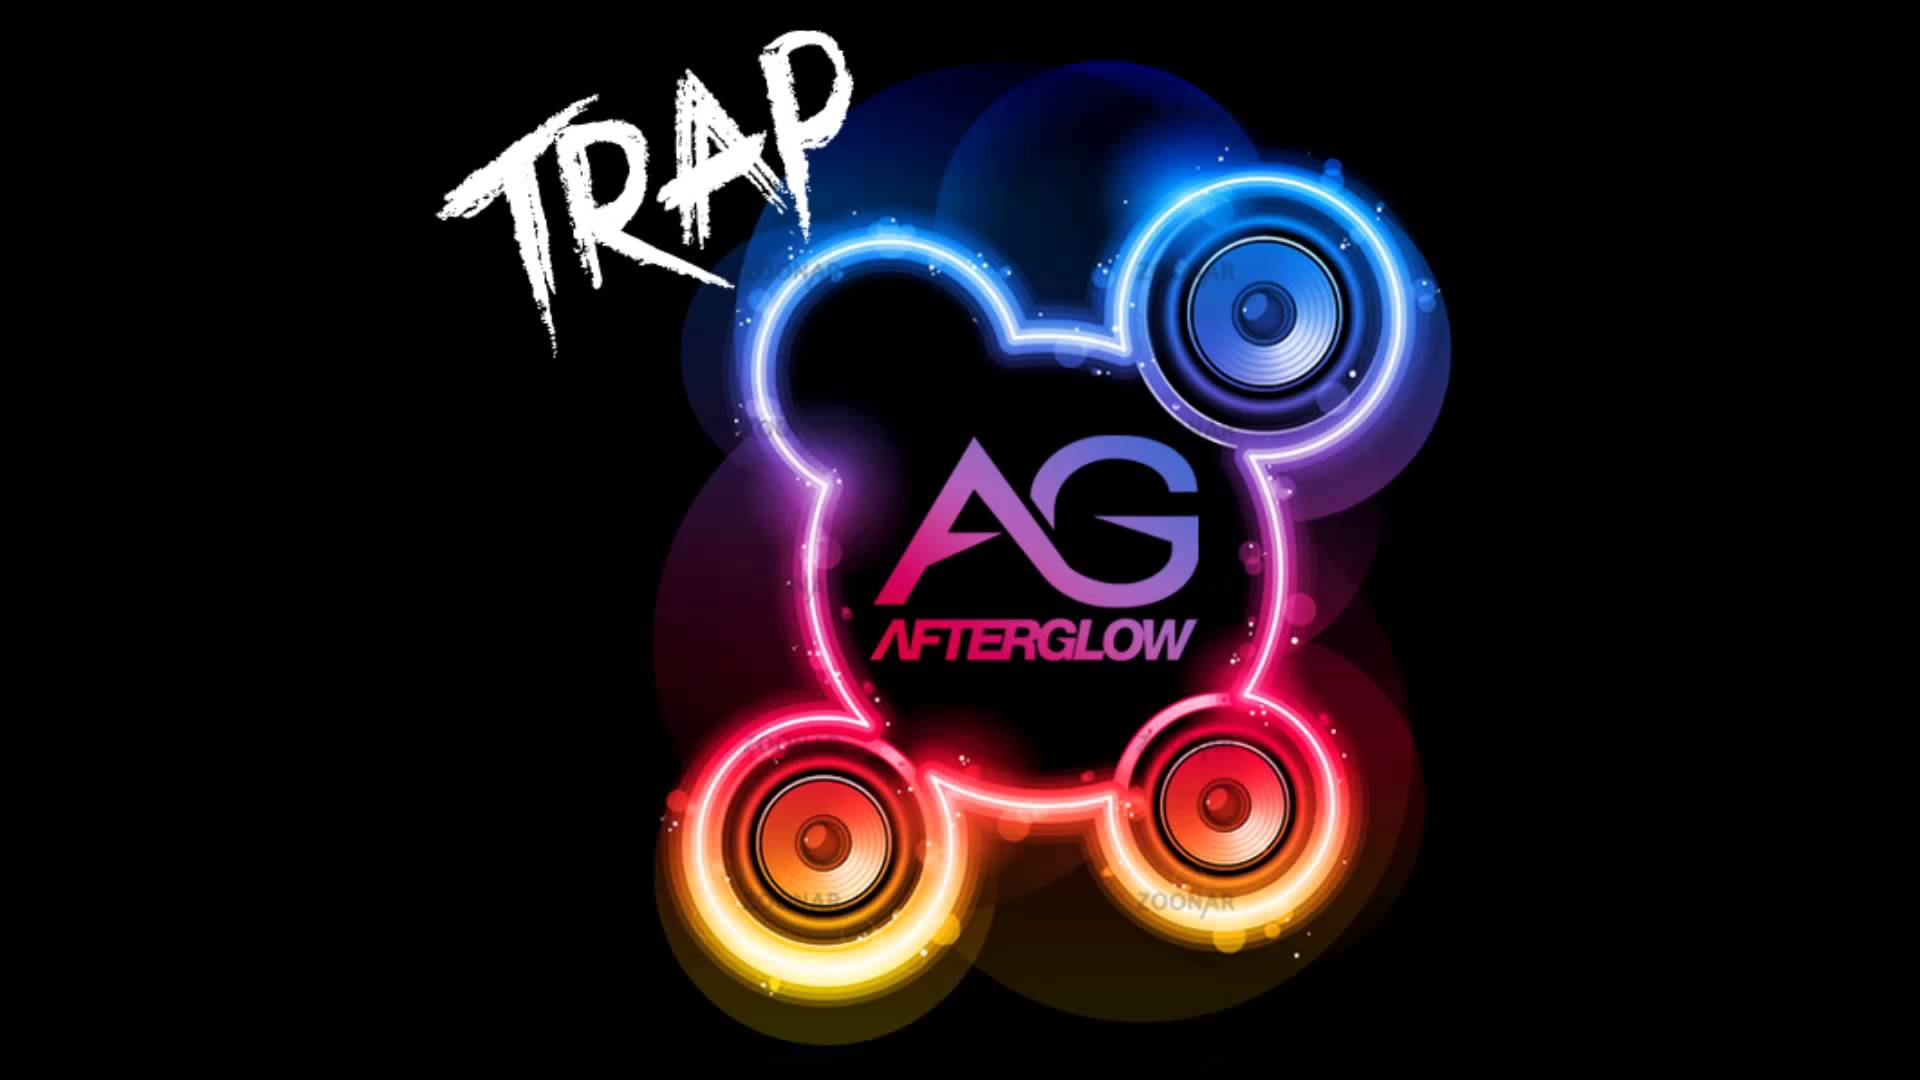 Trap Music Wallpaper - Trap Music (# 477962) - Descargar fondo de pantalla HD